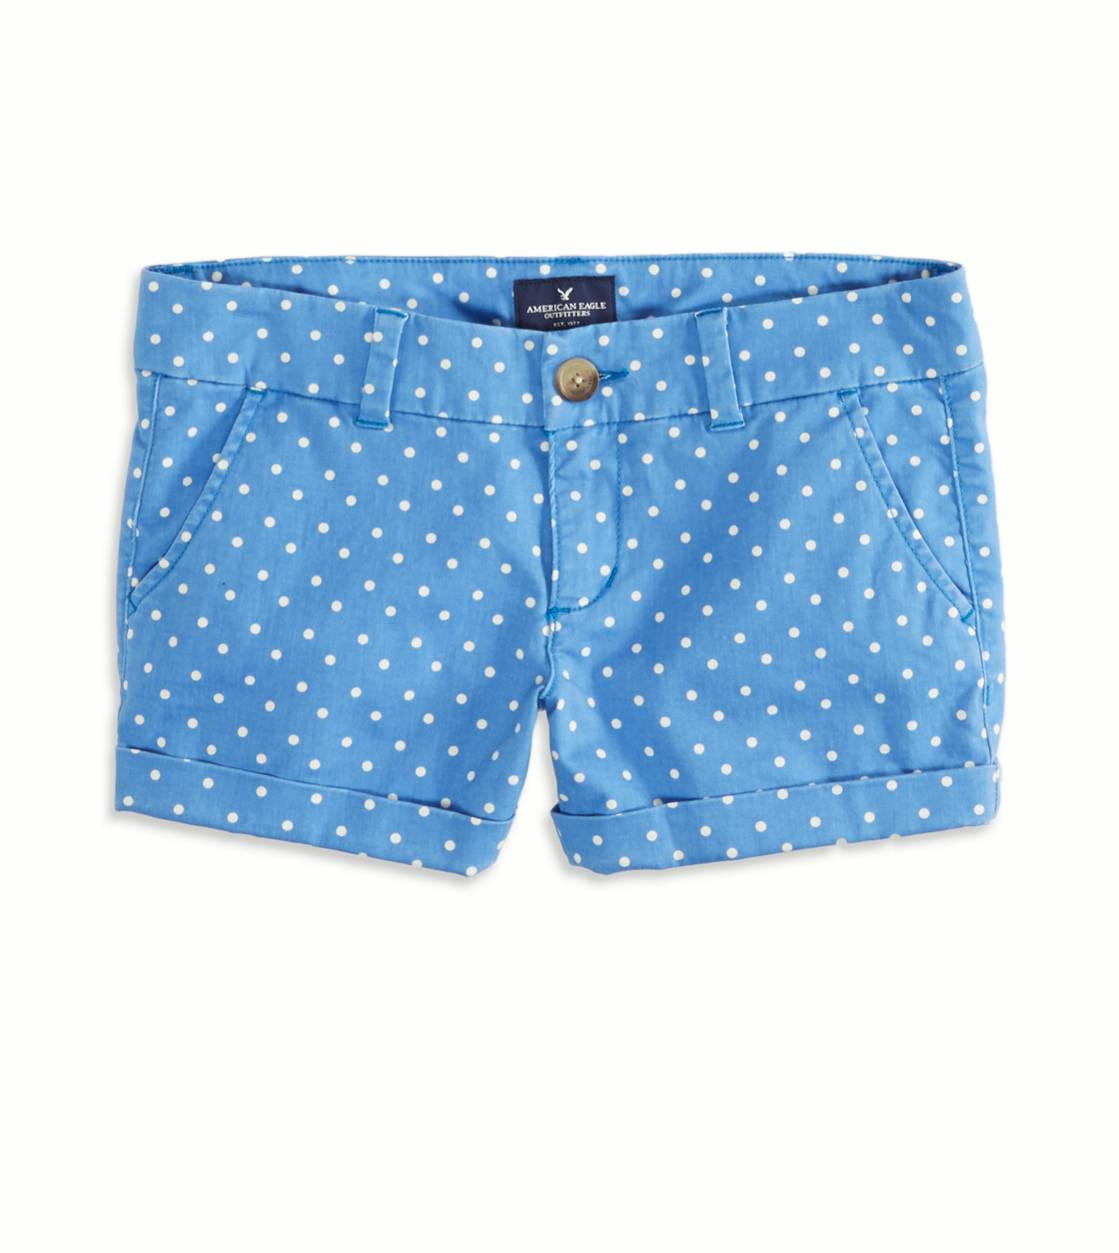 Sapphire Ice AEO Factory Patterned Midi Short